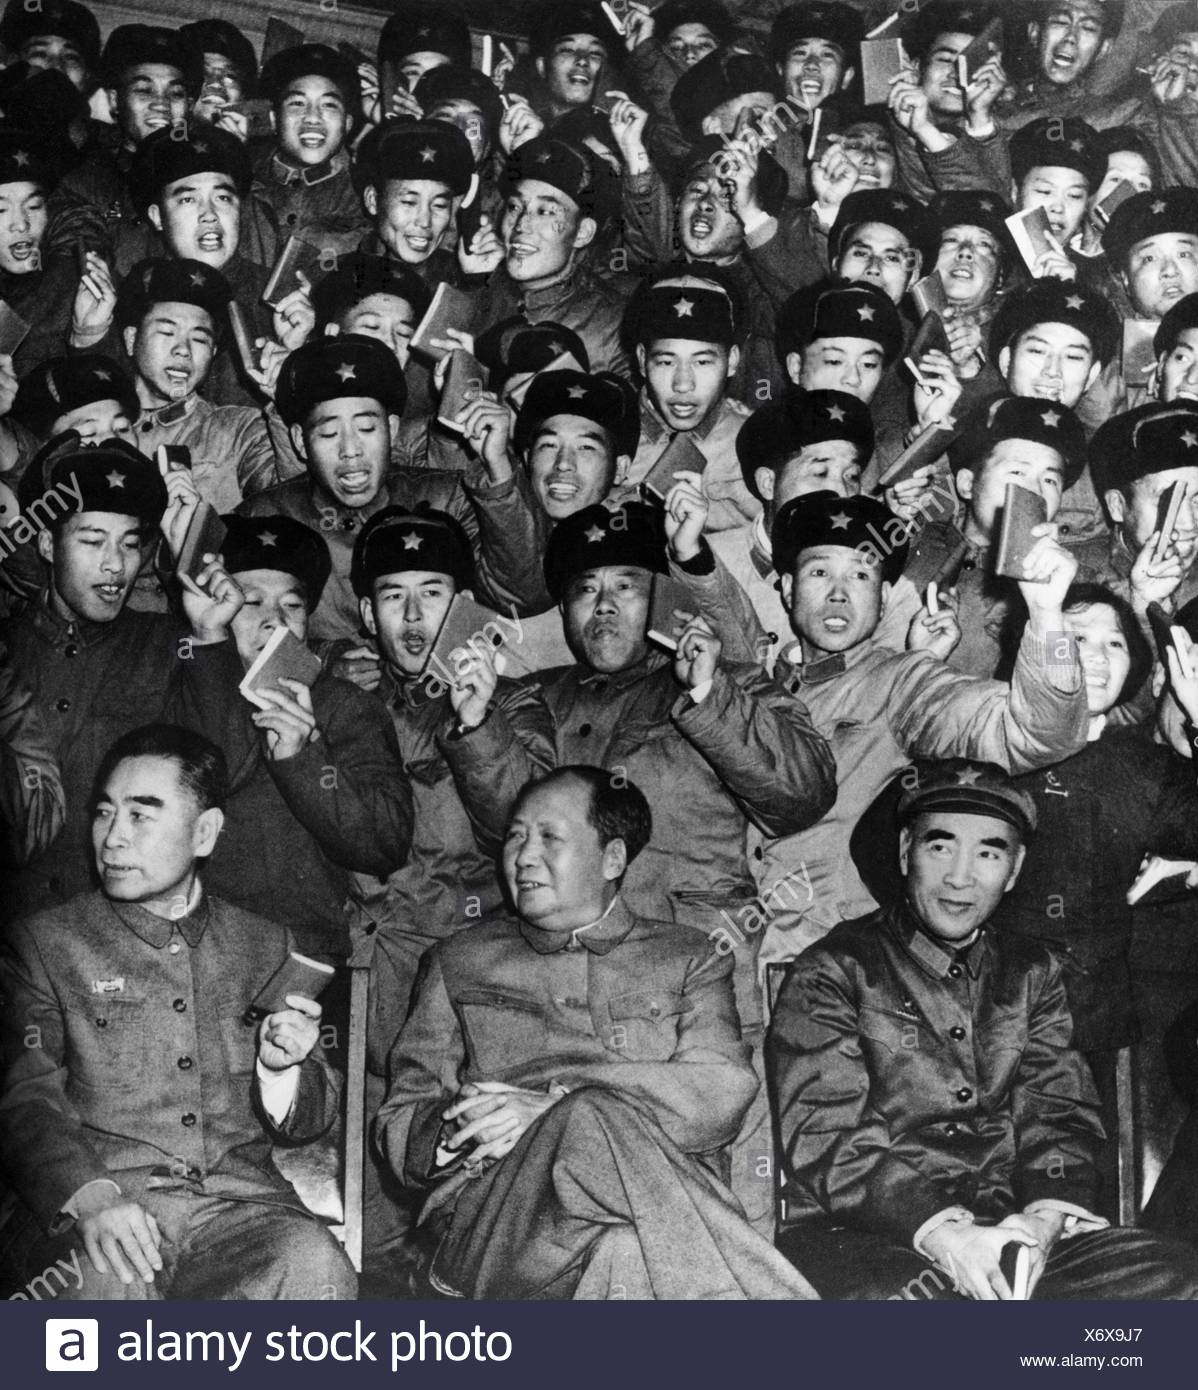 Mao Zedong, 26.12.1893 - 9.9.1976, Chinese politician, half length, with Lin Biao, Zhou Enlai, 1st congress of the activists, 3.12.1967, Additional-Rights-Clearances-NA - Stock Image